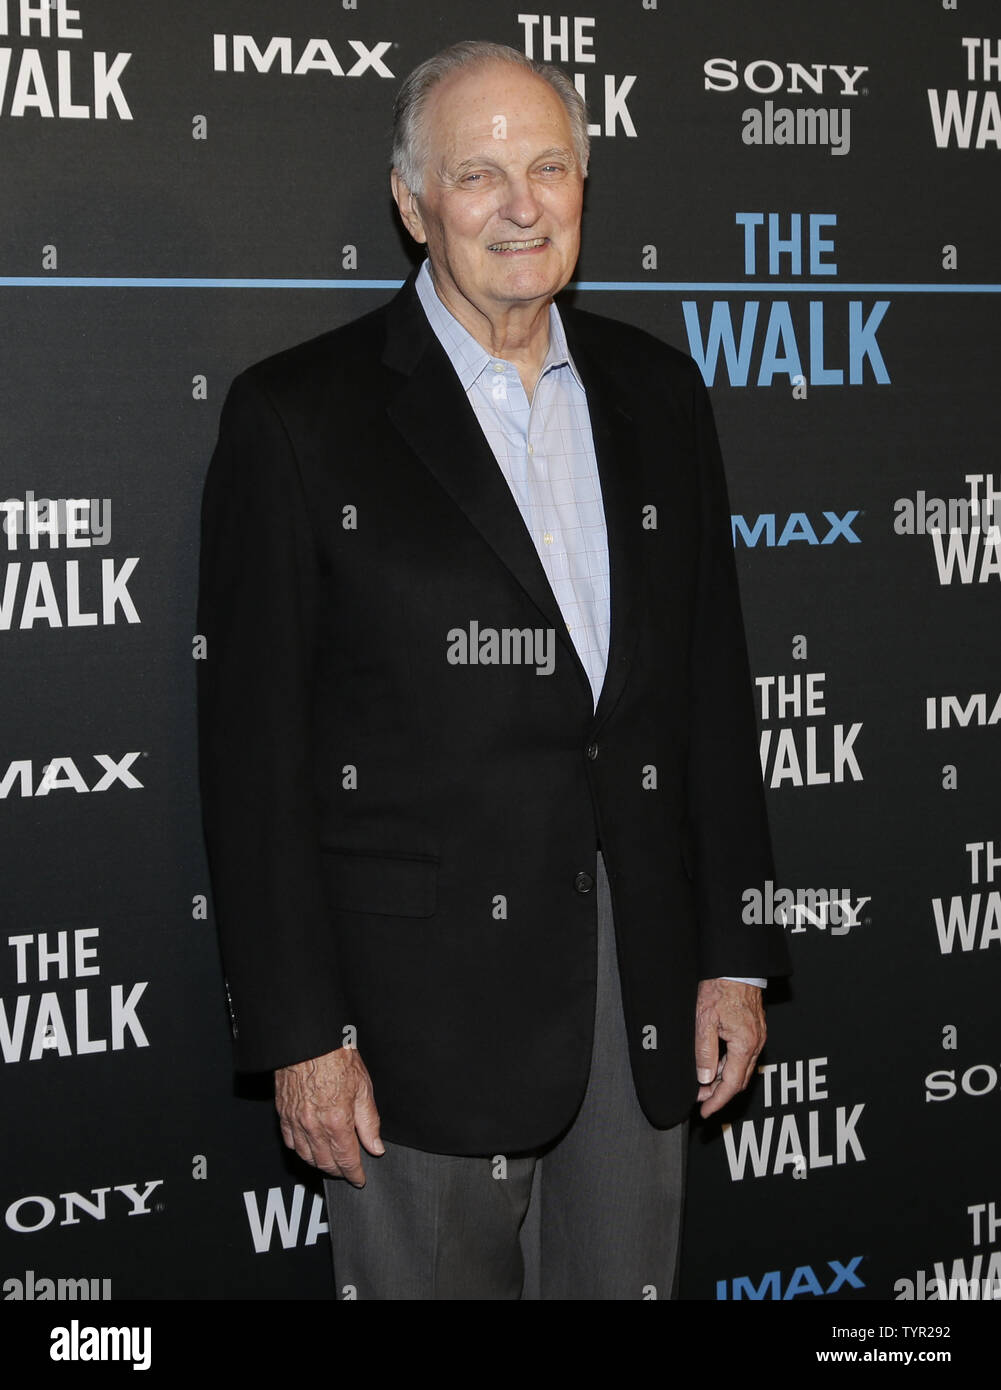 Alan Alda arrives on the red carpet at 'The Walk' IMAX Special screening at the AMC Lincoln Square Theater on September 28, 2015 in New York City.     Photo by John Angelillo/UPI - Stock Image